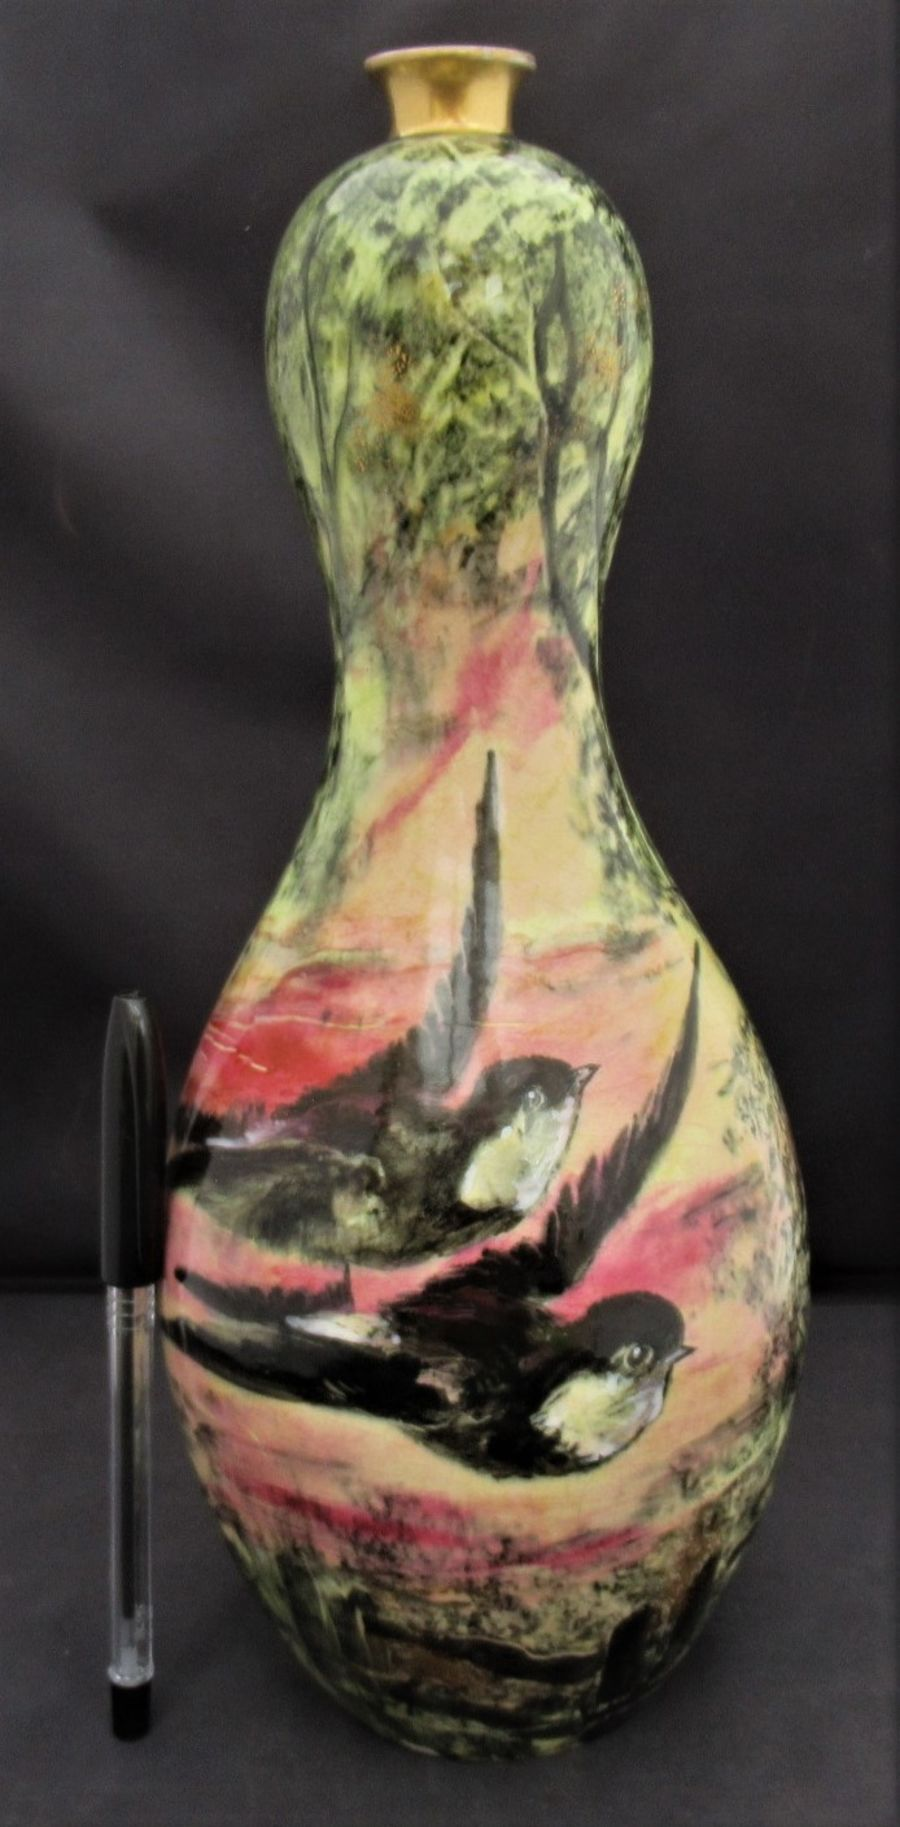 Thomas Forester vase with swallows painted by Thomas Dean c1900